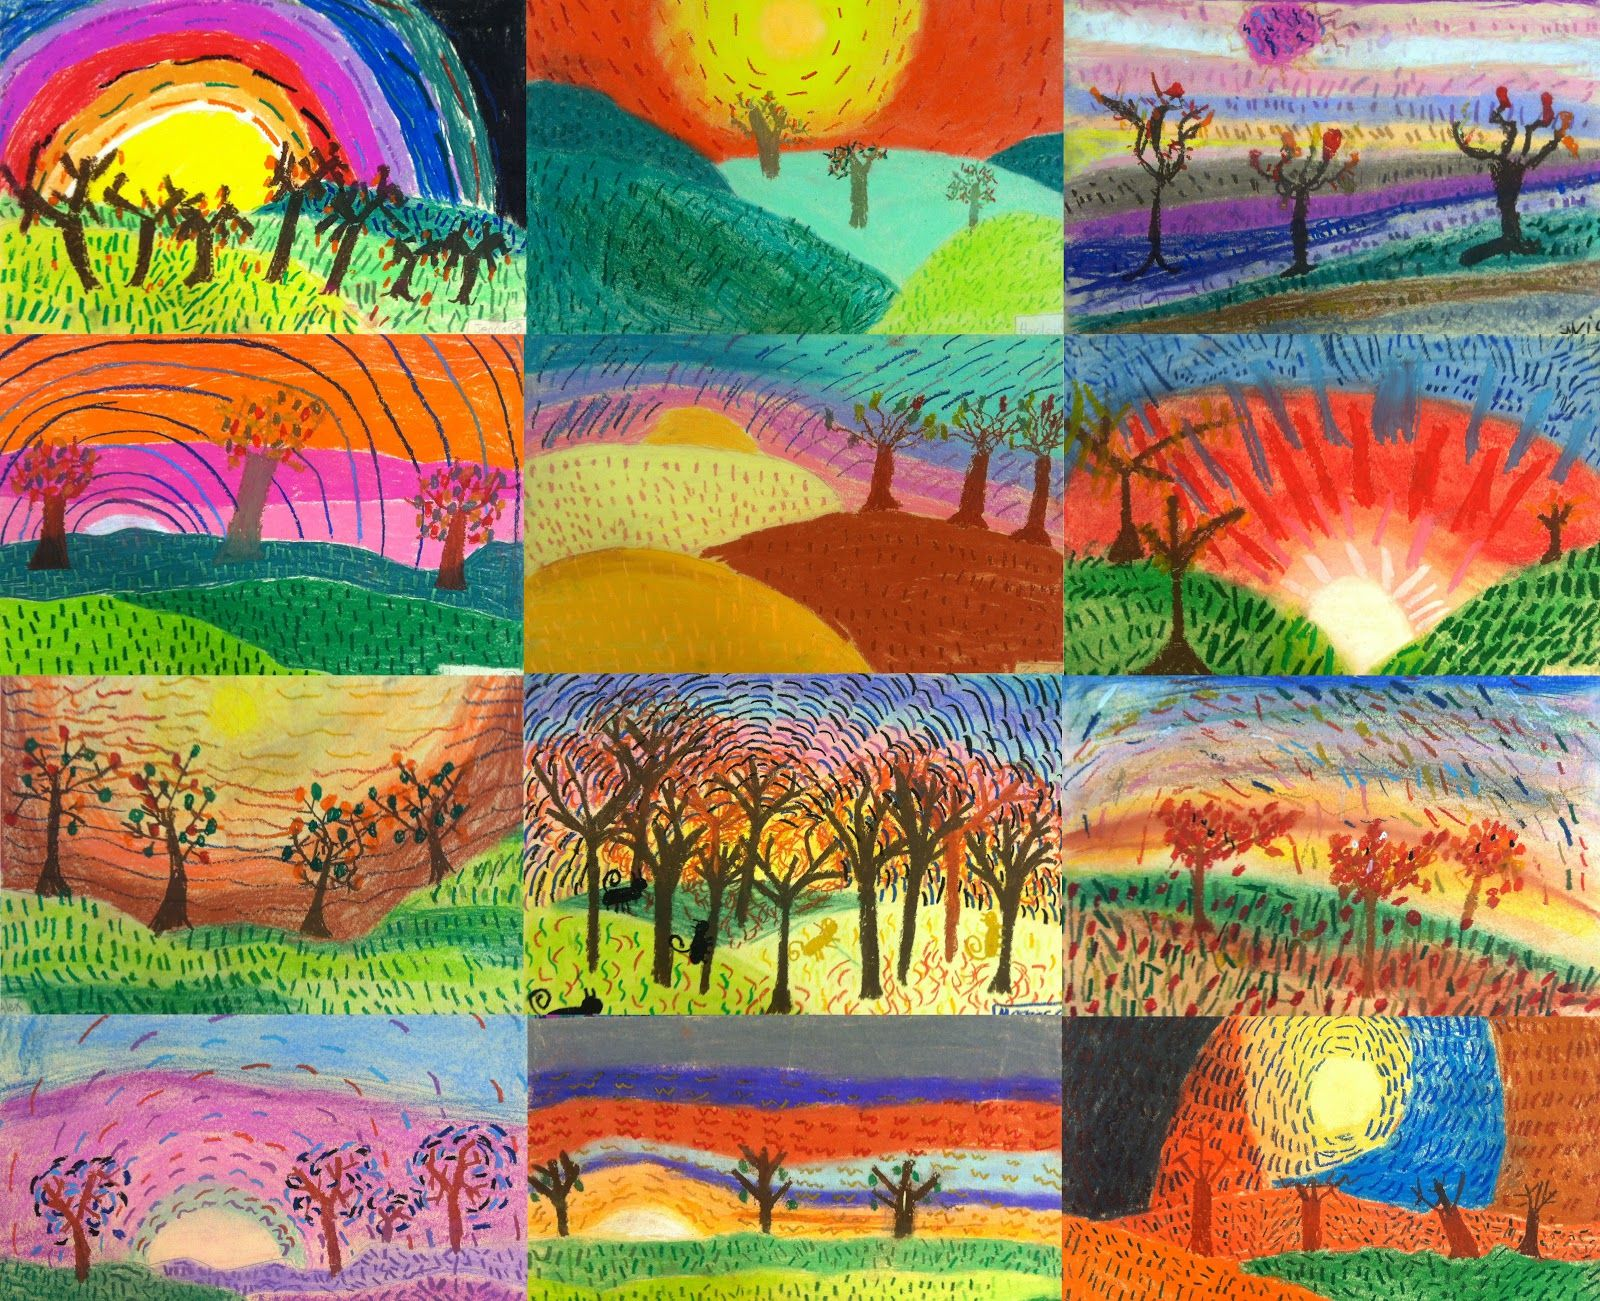 b9c35fe6aa05148e1a19b08d40b9f7ff  Th Grade Art Landscape on science clipart, crystal gems rocks, painting effects, projects easy crafts, salvador elementary, lessons flowers,